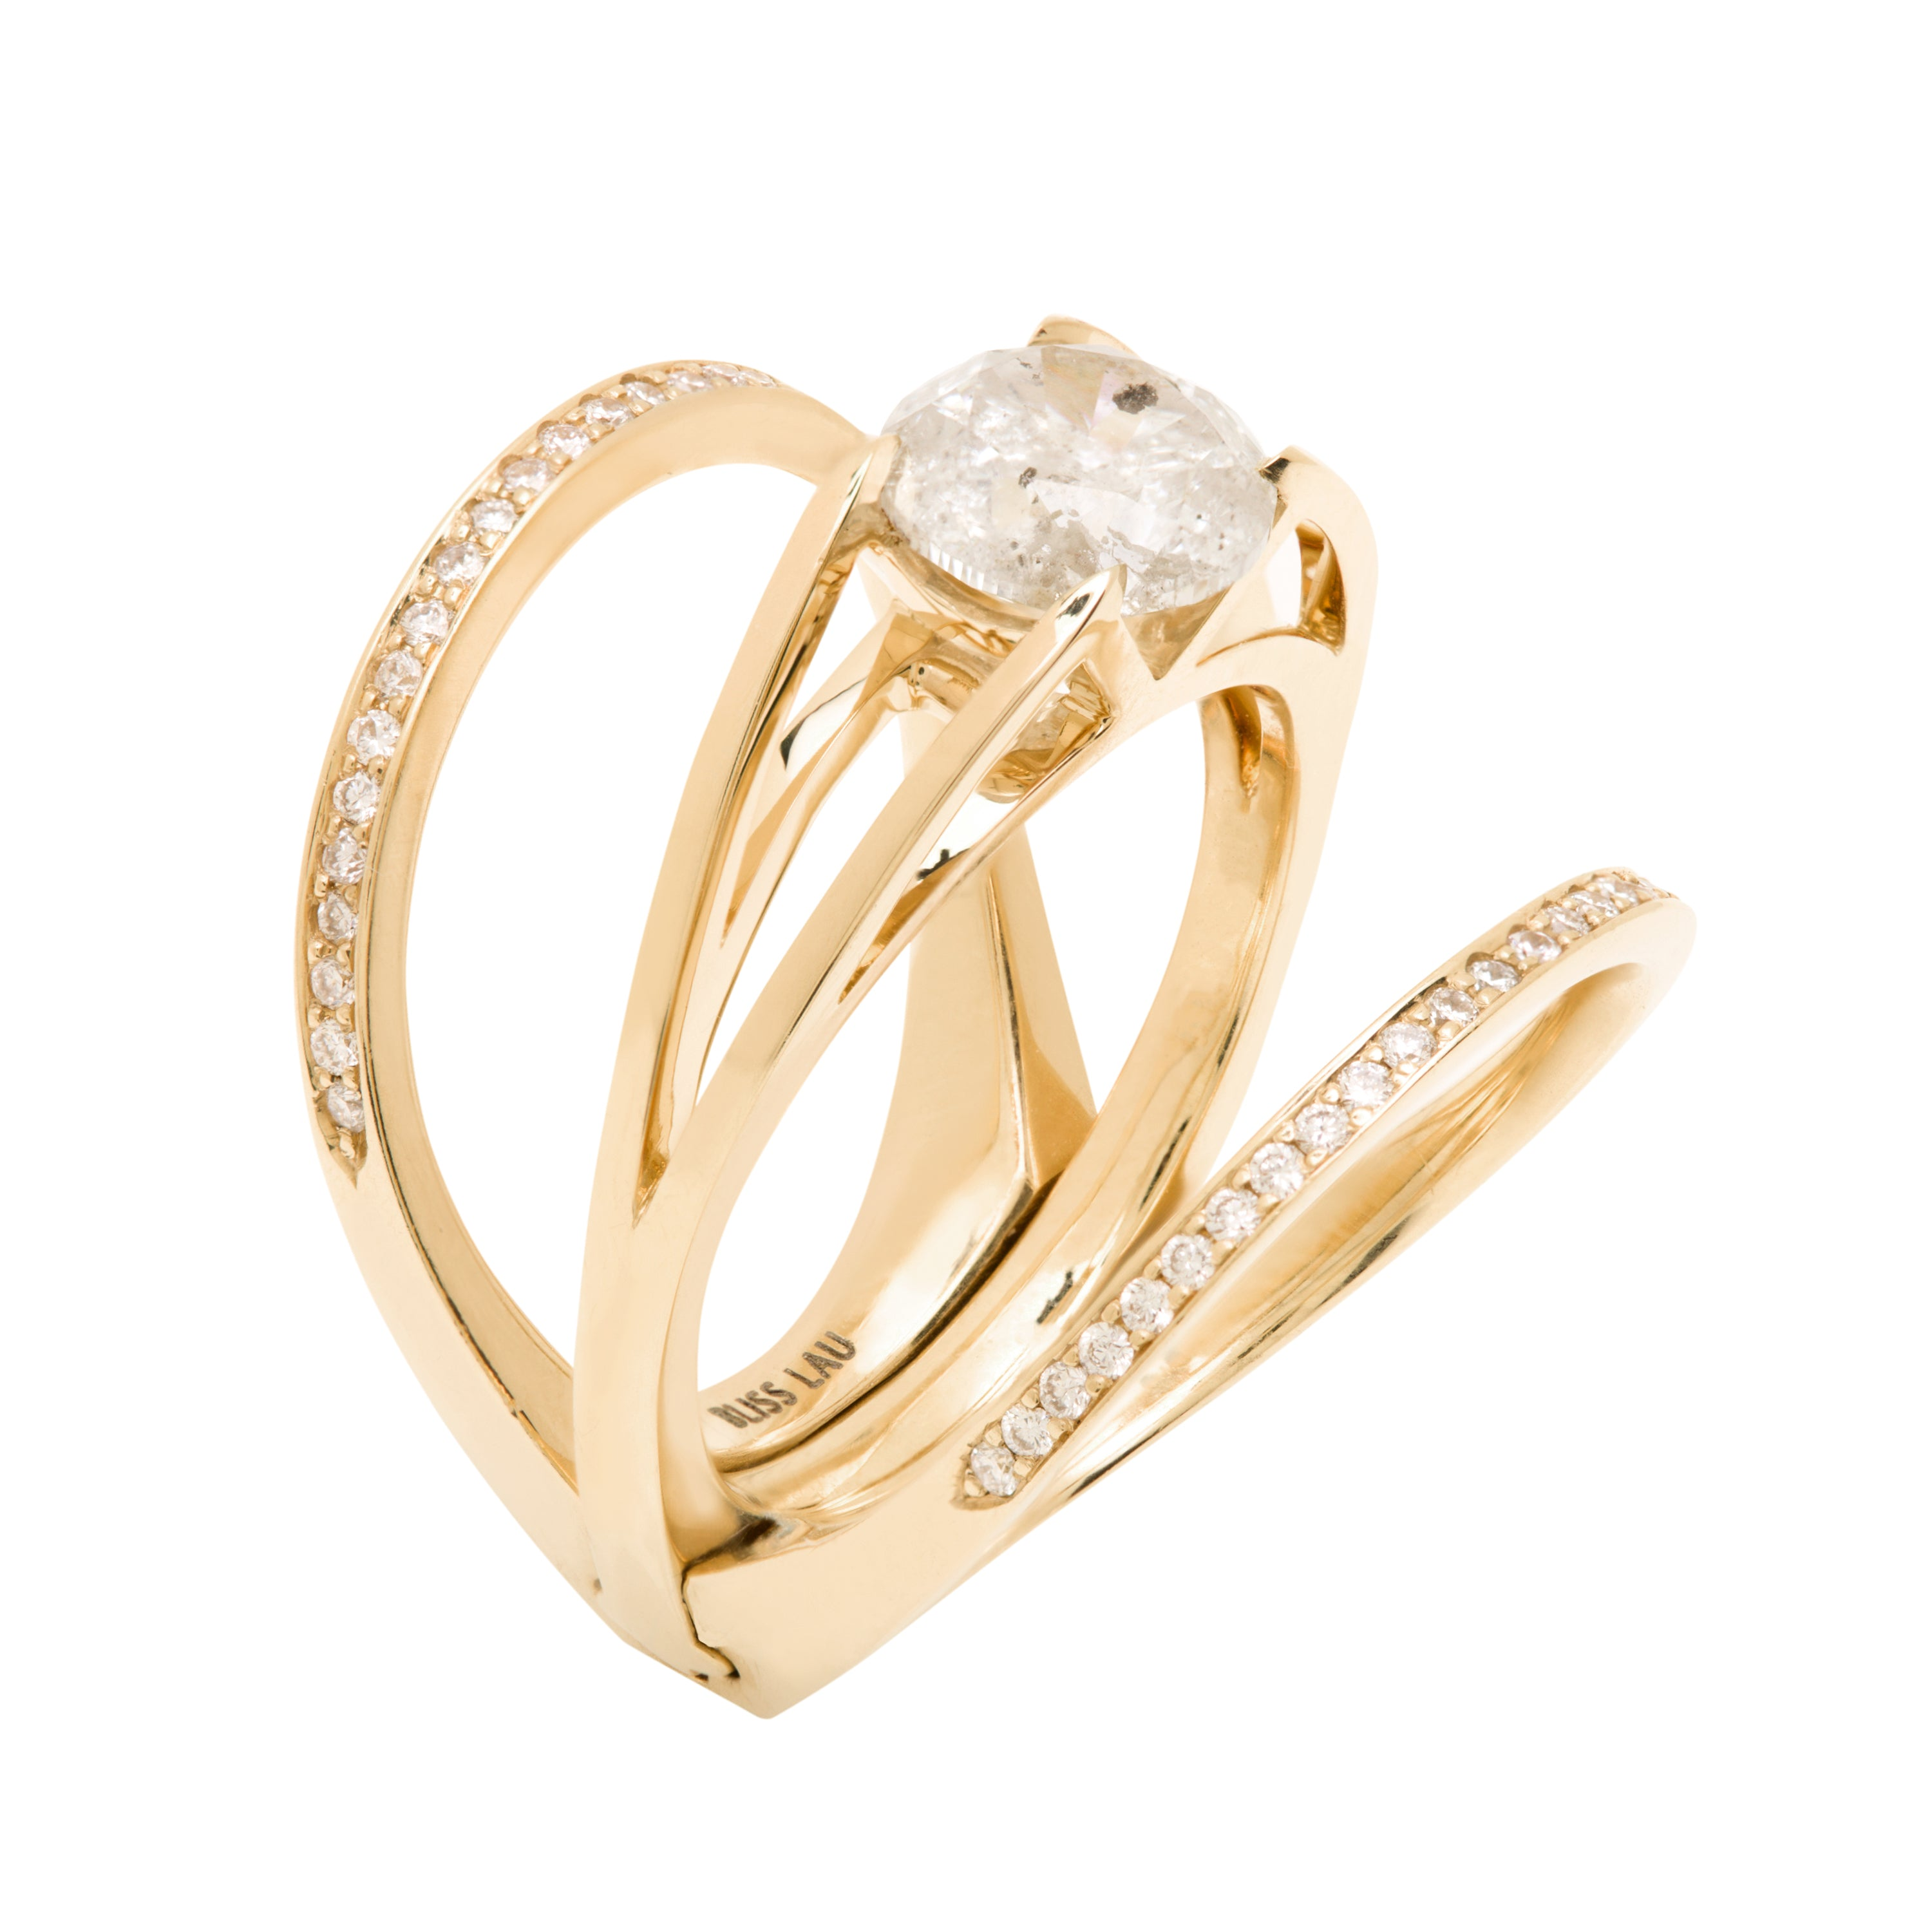 Acute 22mm Enclose + Centered Ring Set